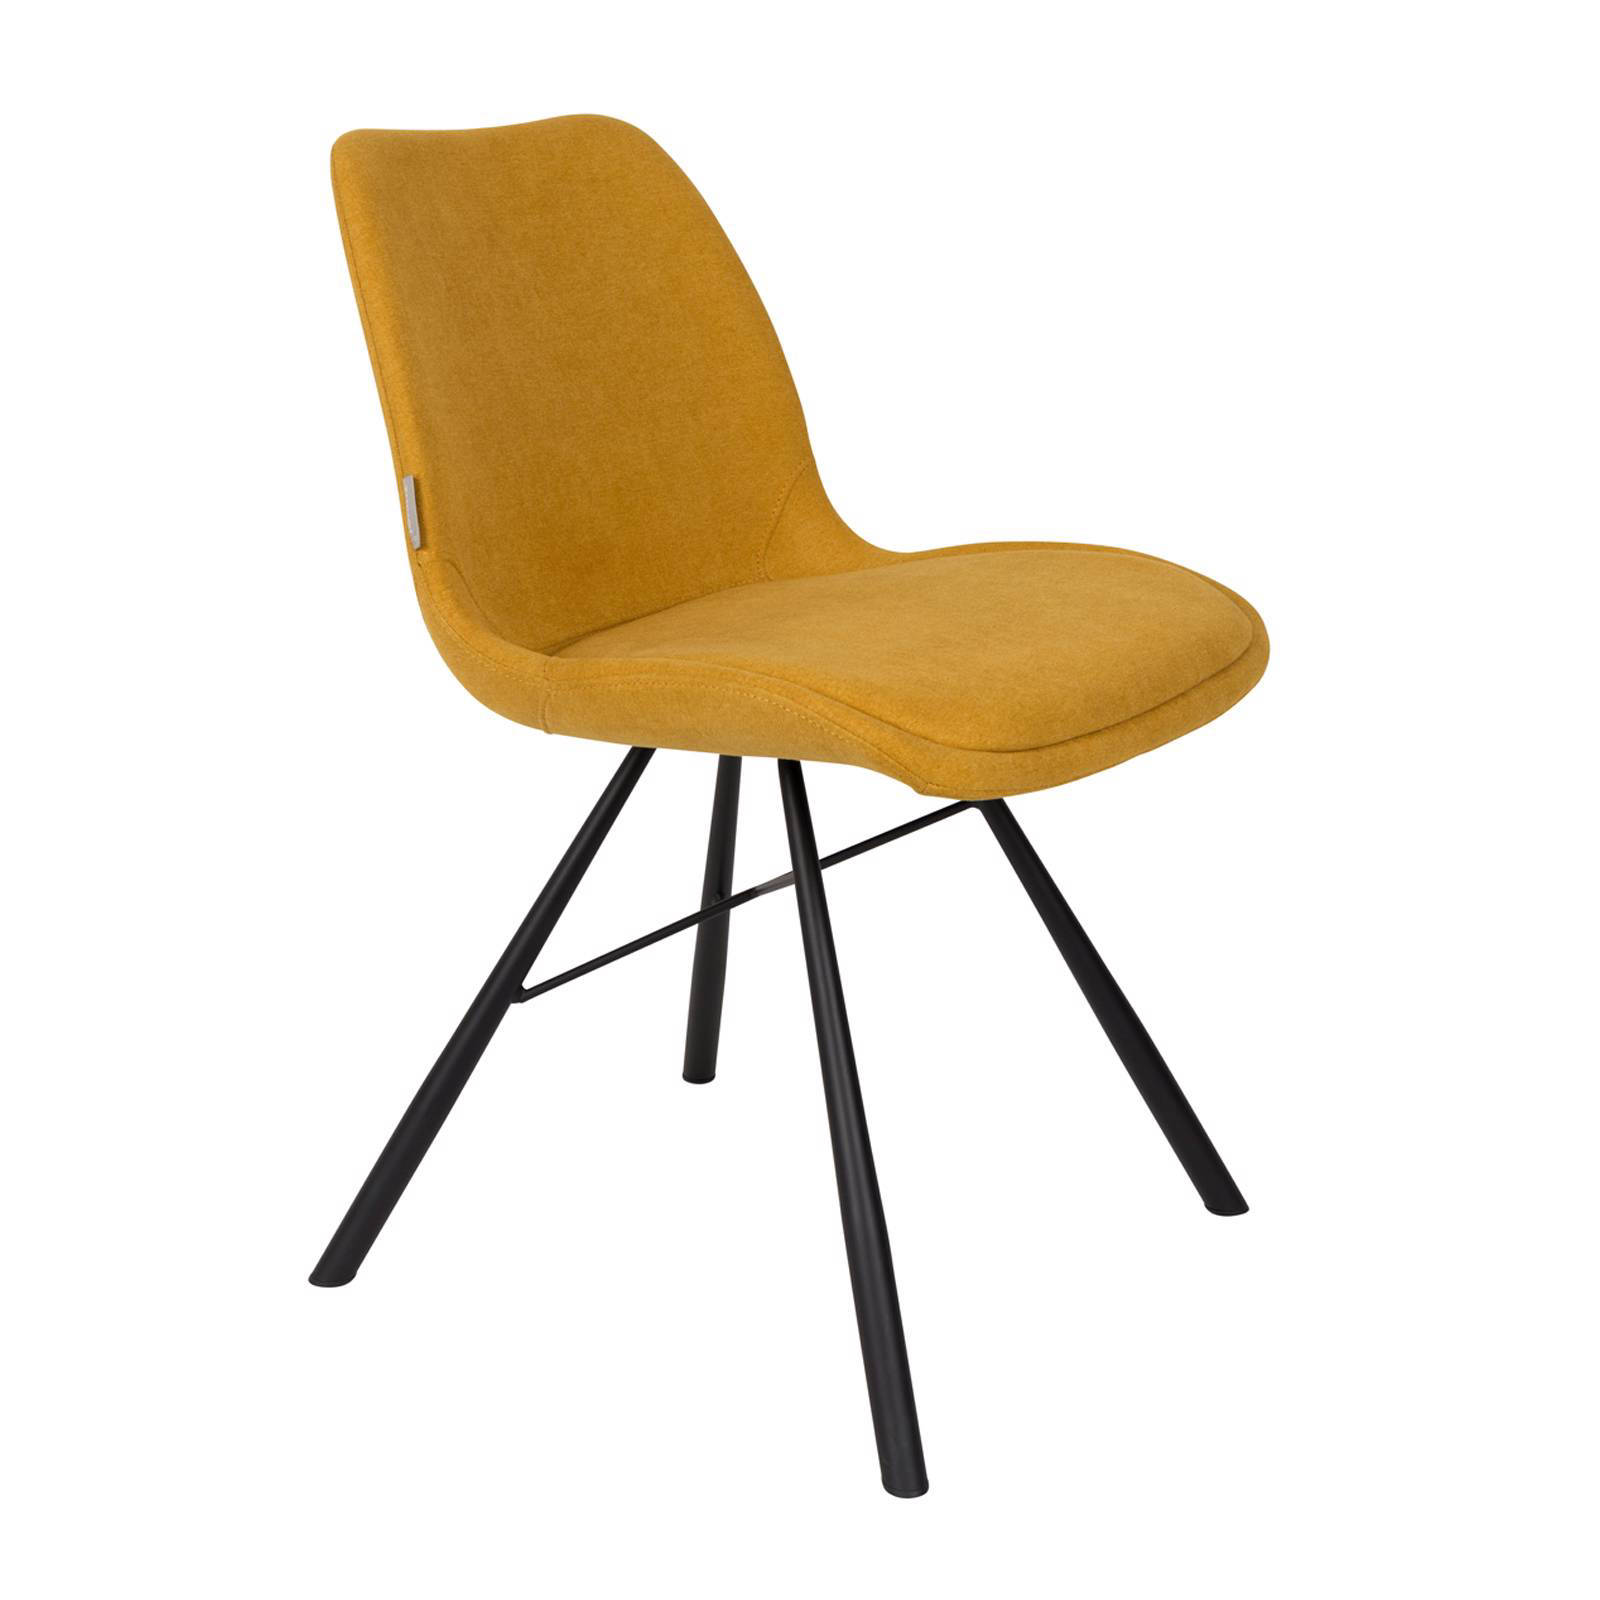 Yellow fabric dining chair high back modern made in china